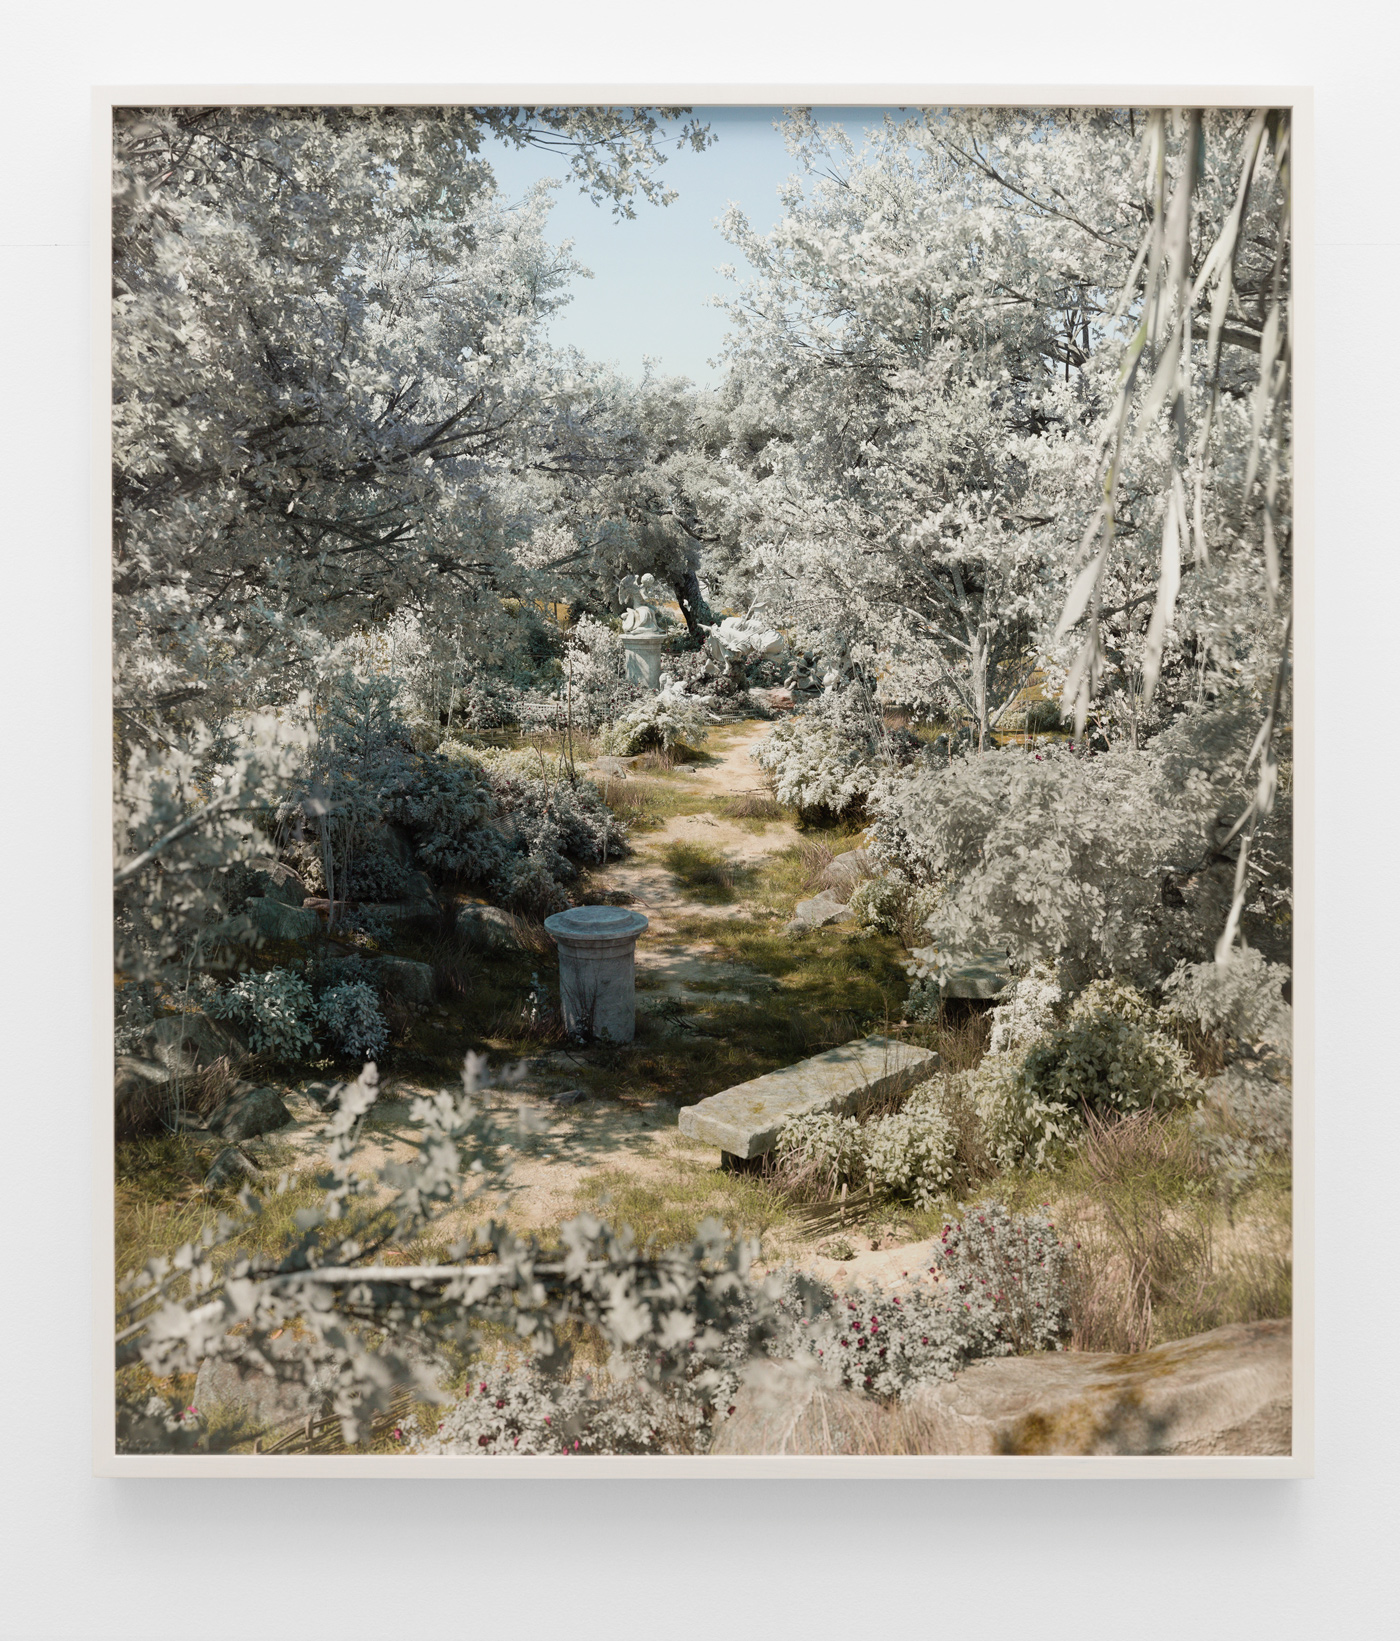 Chris Coy   from A Little Death, solo exhibition at Anat Ebgi, Los Angeles